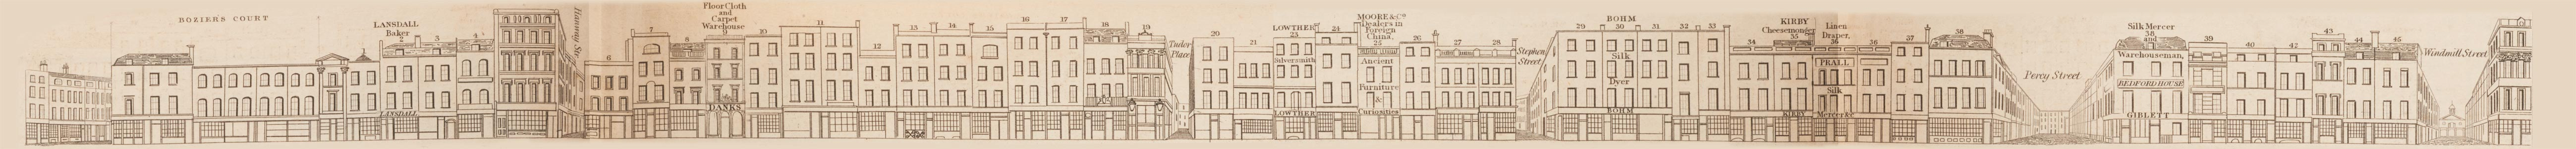 map - Tallis's London street views : No. 53. Tottenham Court Road, division 3 (west)